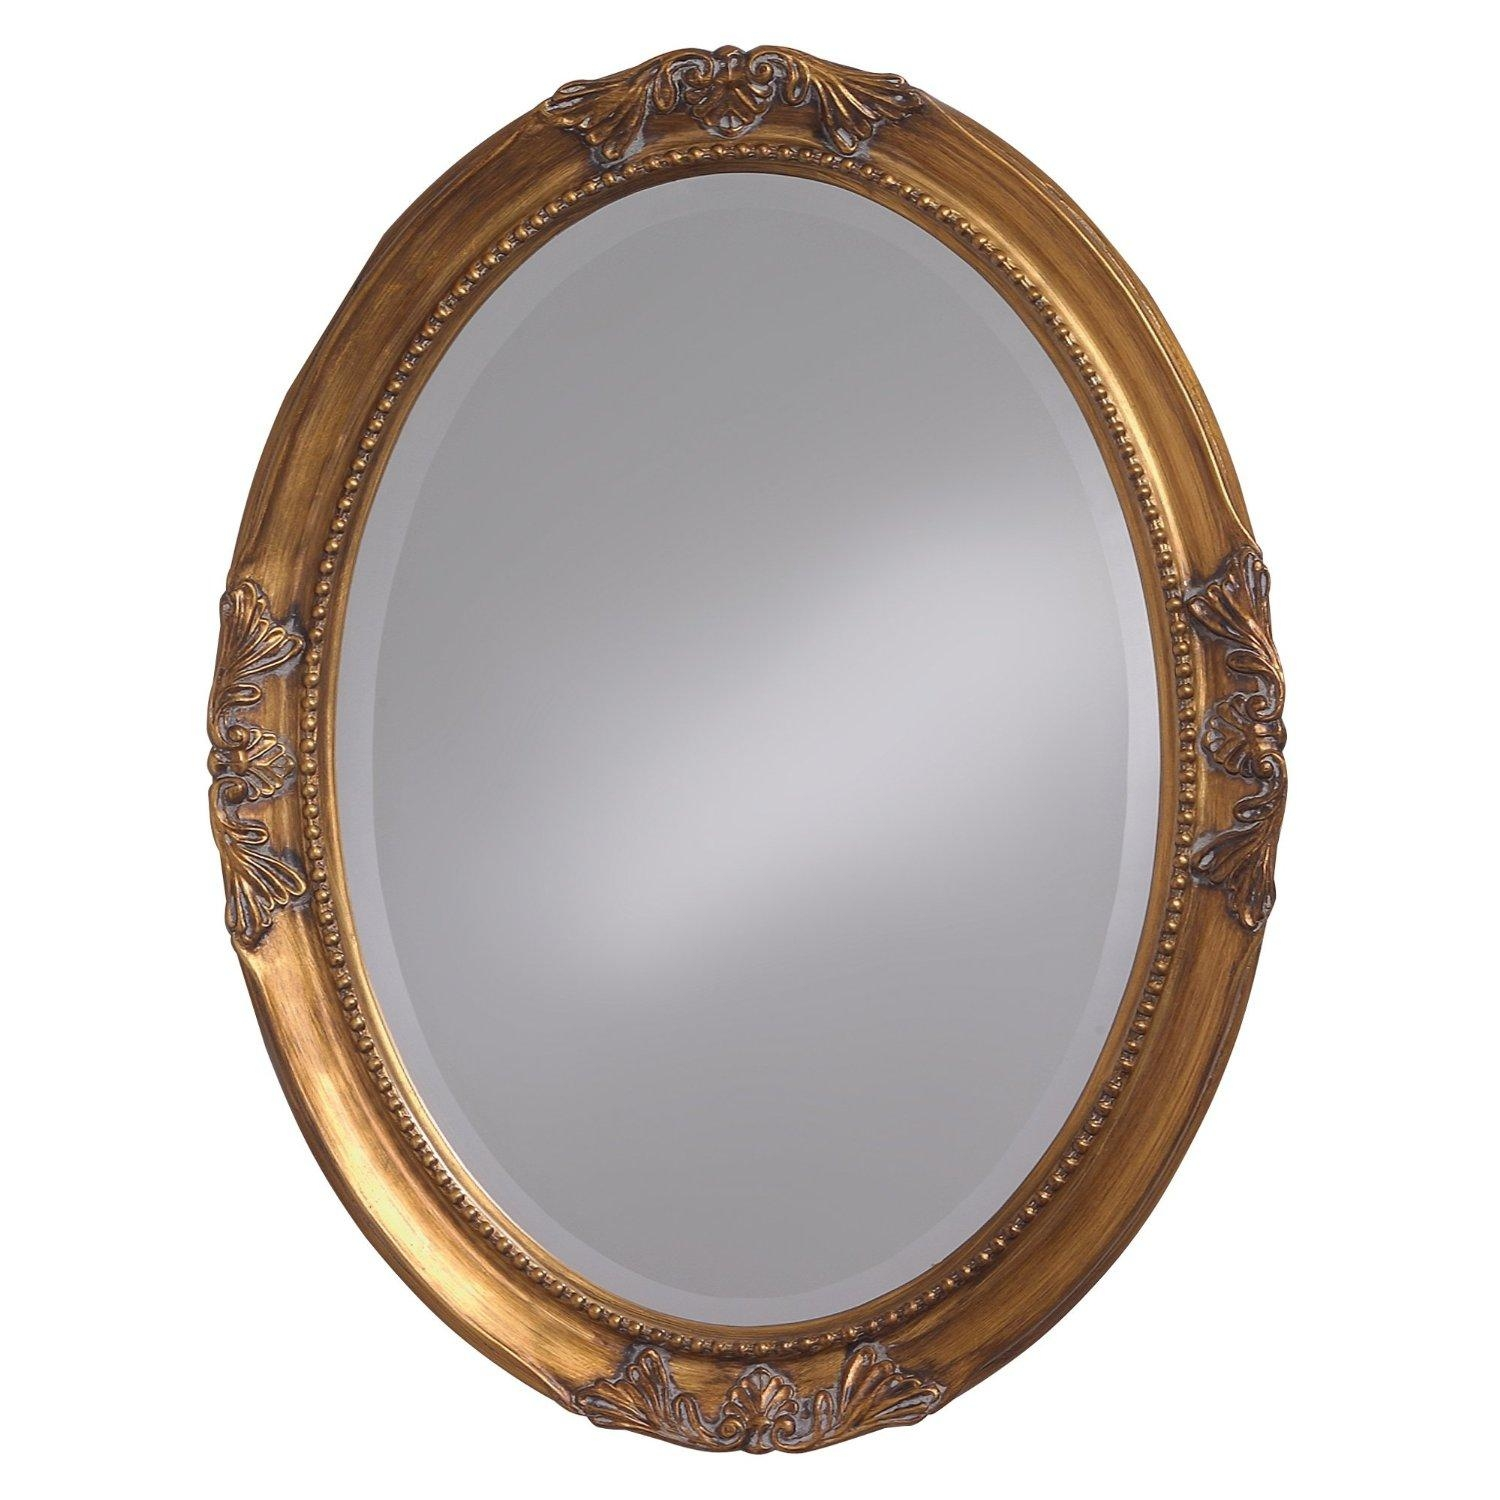 16 Ornate Mirrors For Your Home | Qosy With Antique Round Mirror (Image 1 of 20)